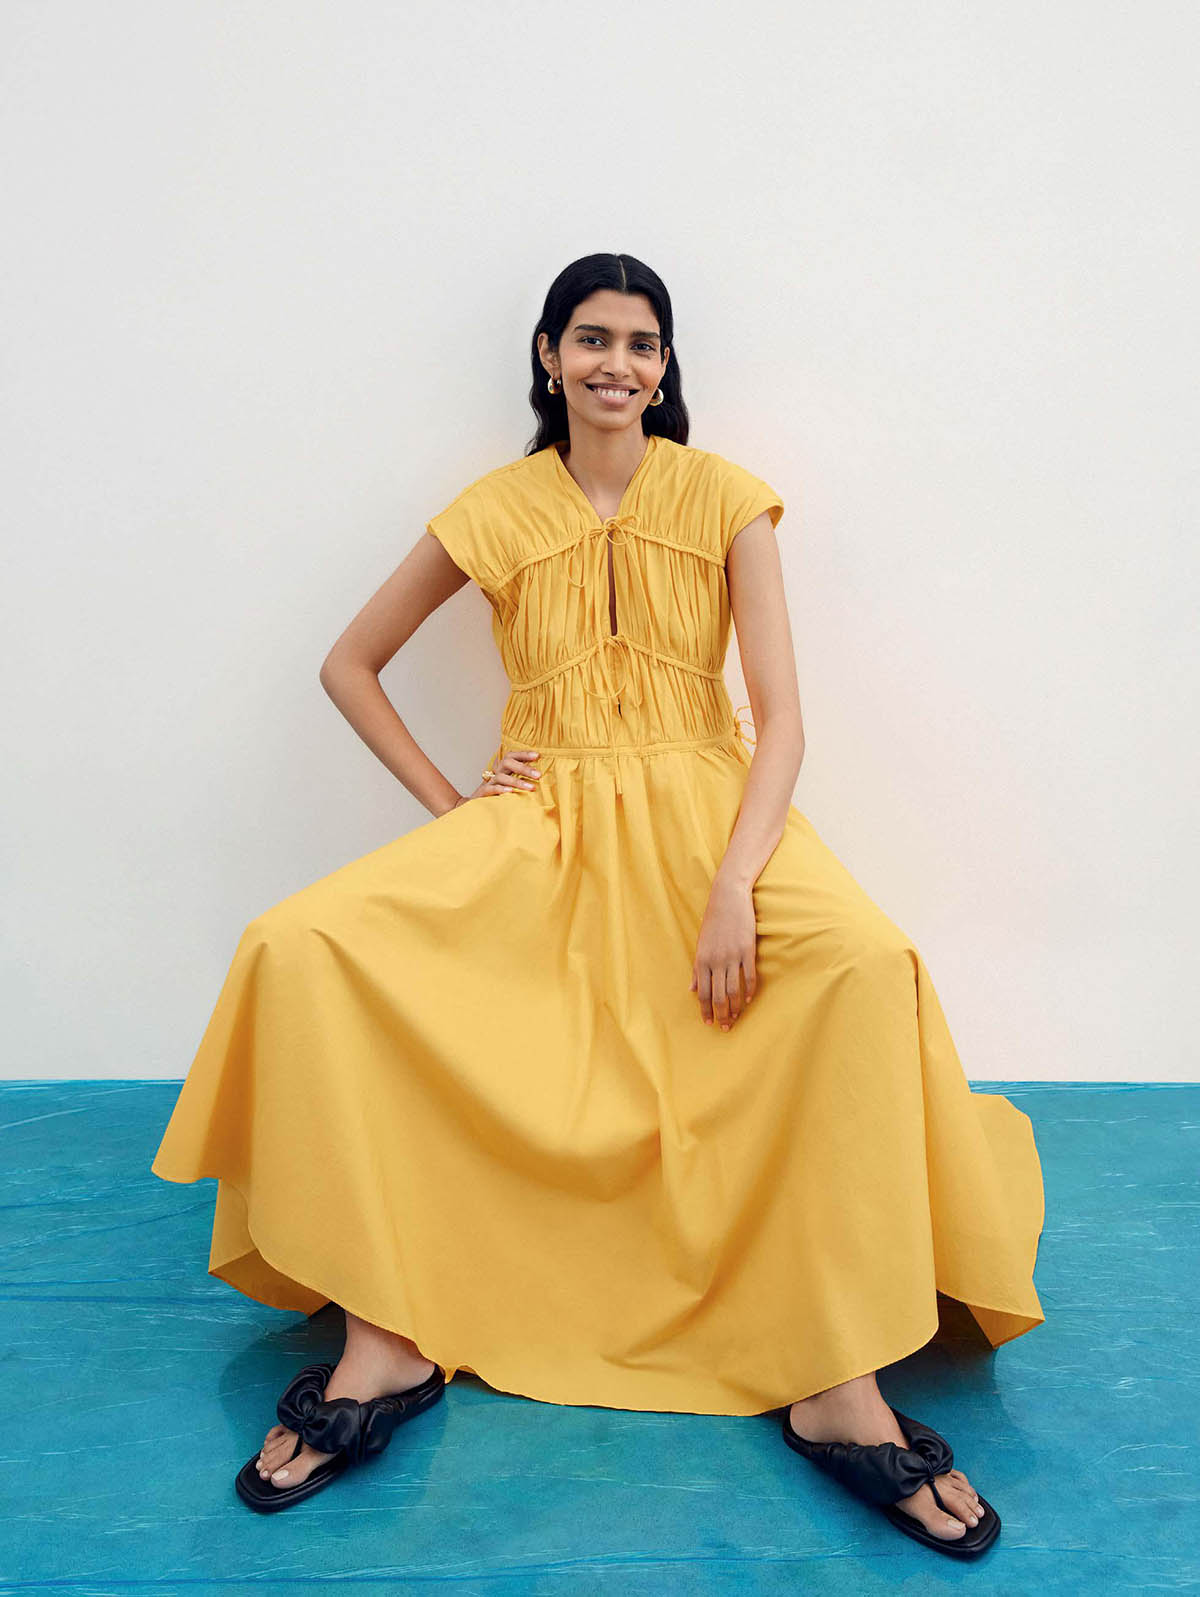 Pooja Mor covers The Sunday Times Style April 4th, 2021 by Georgia Devey Smith